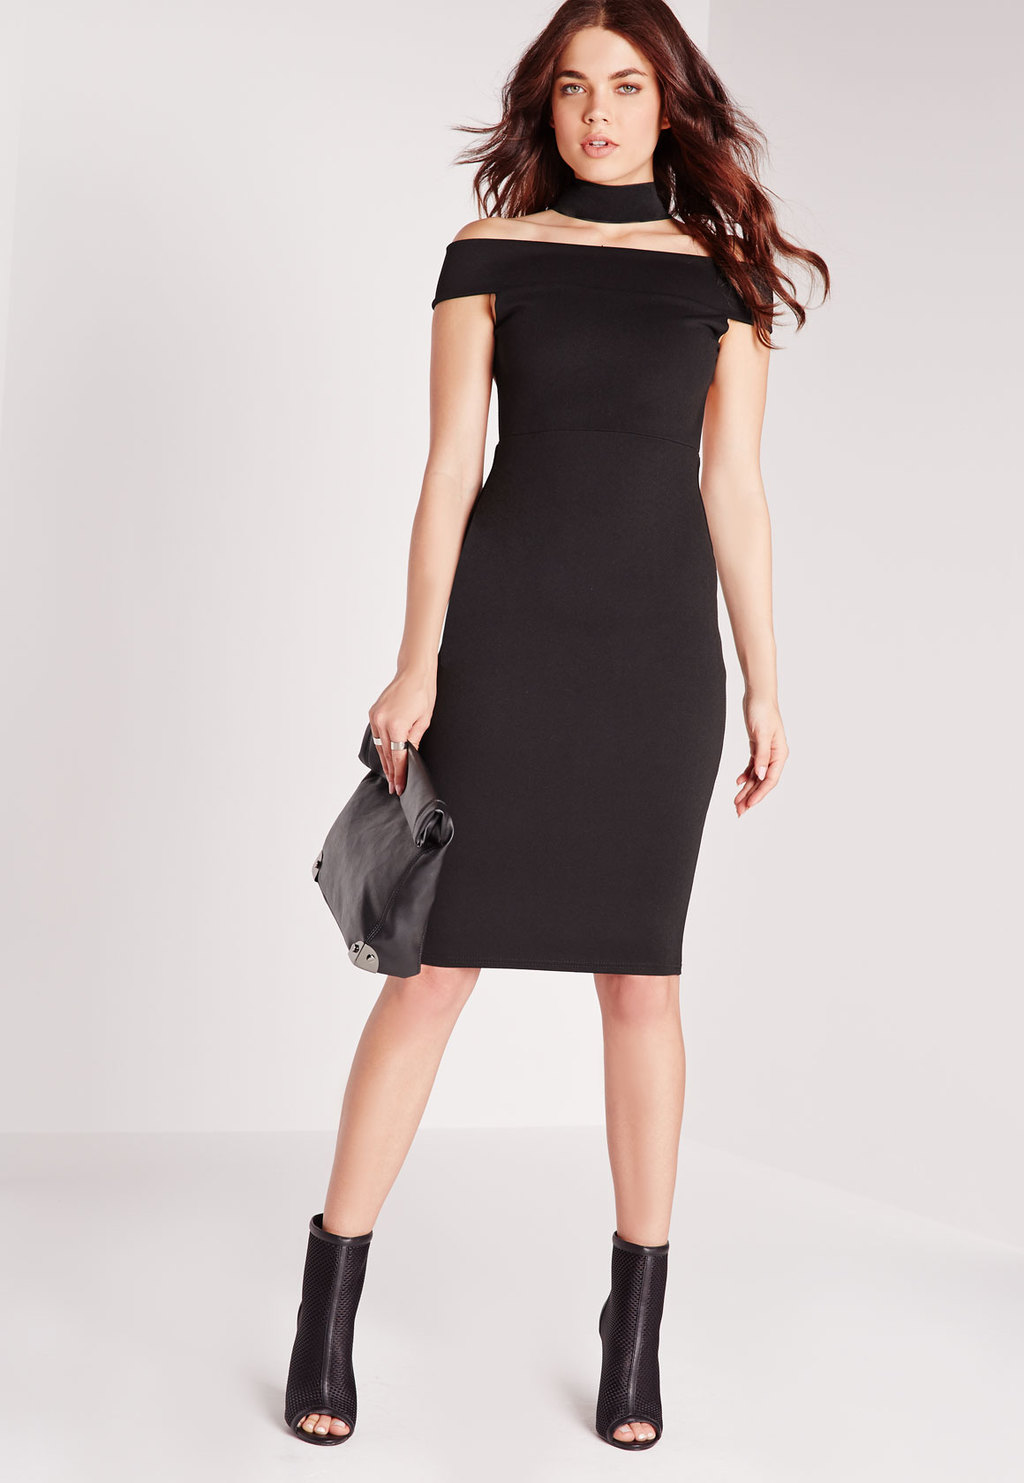 Elastic Neck Strap Detail Bodycon Dress Black, Black - neckline: off the shoulder; sleeve style: capped; fit: tight; pattern: plain; style: bodycon; hip detail: draws attention to hips; predominant colour: black; occasions: evening; length: on the knee; fibres: polyester/polyamide - stretch; sleeve length: short sleeve; texture group: jersey - clingy; pattern type: fabric; season: s/s 2016; wardrobe: event